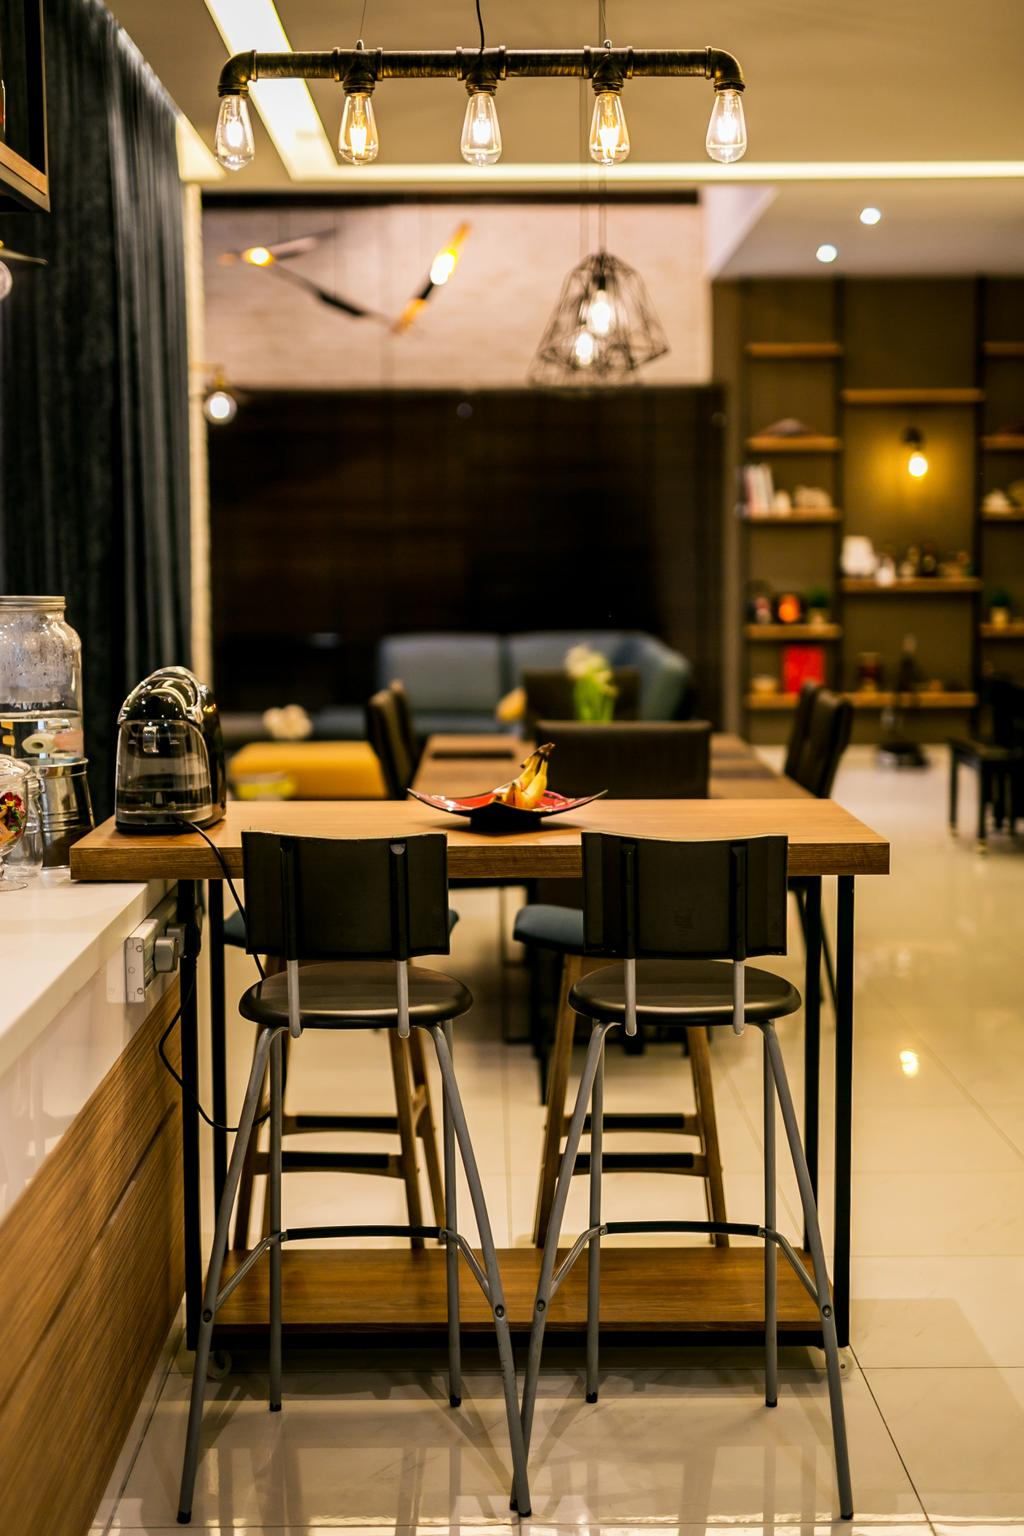 Landed, Kitchen, Akira Sierra, Interior Designer, M innovative Builders, Chair, Furniture, Dining Table, Table, Conference Room, Indoors, Meeting Room, Room, Bar Stool